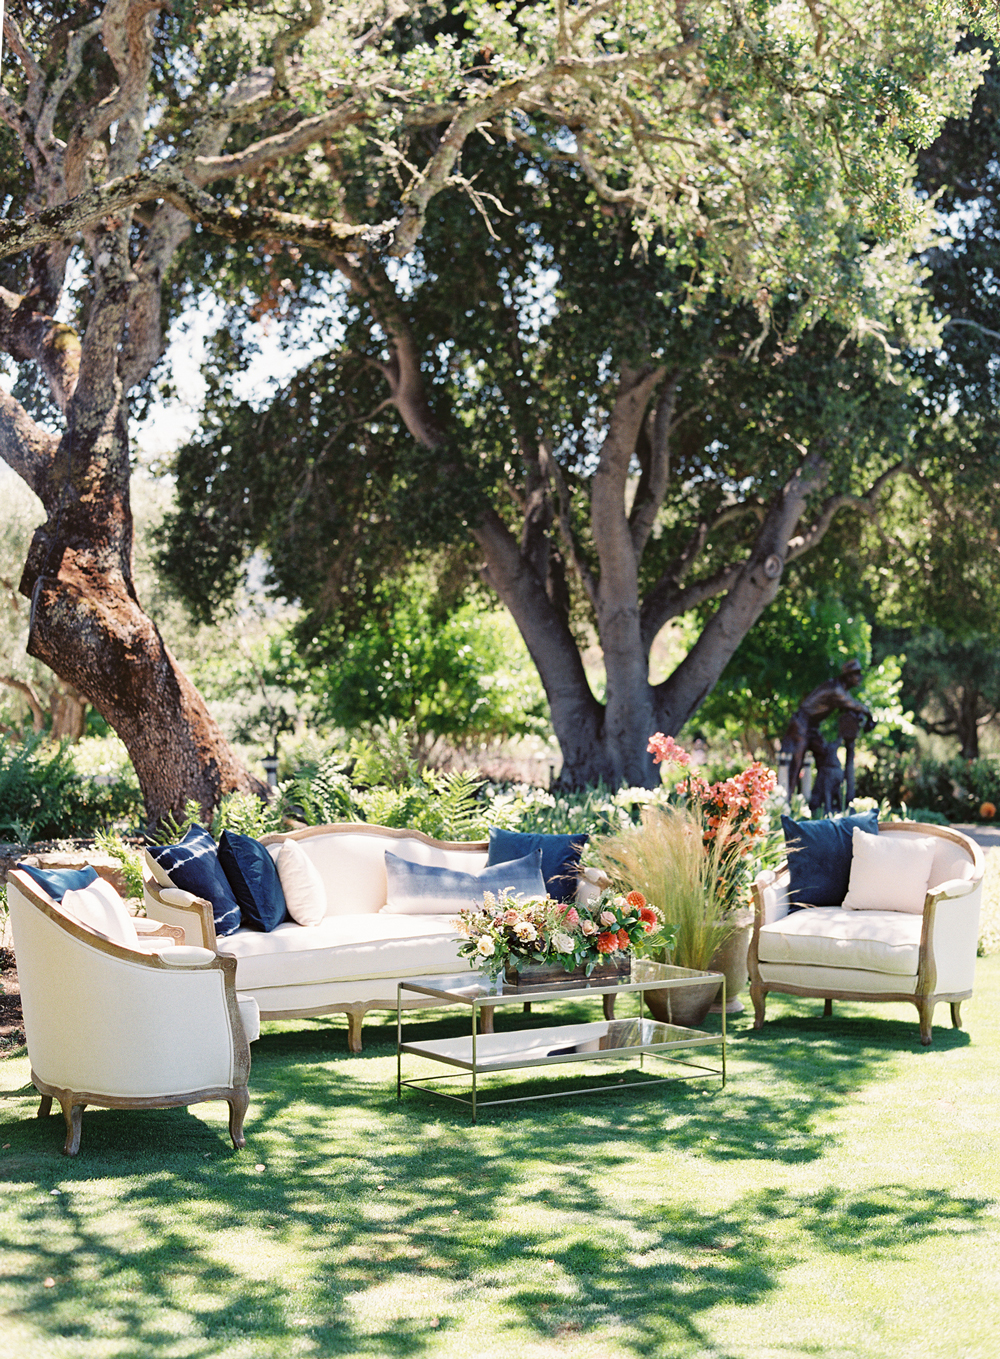 laurie michael wedding lounge beneath trees